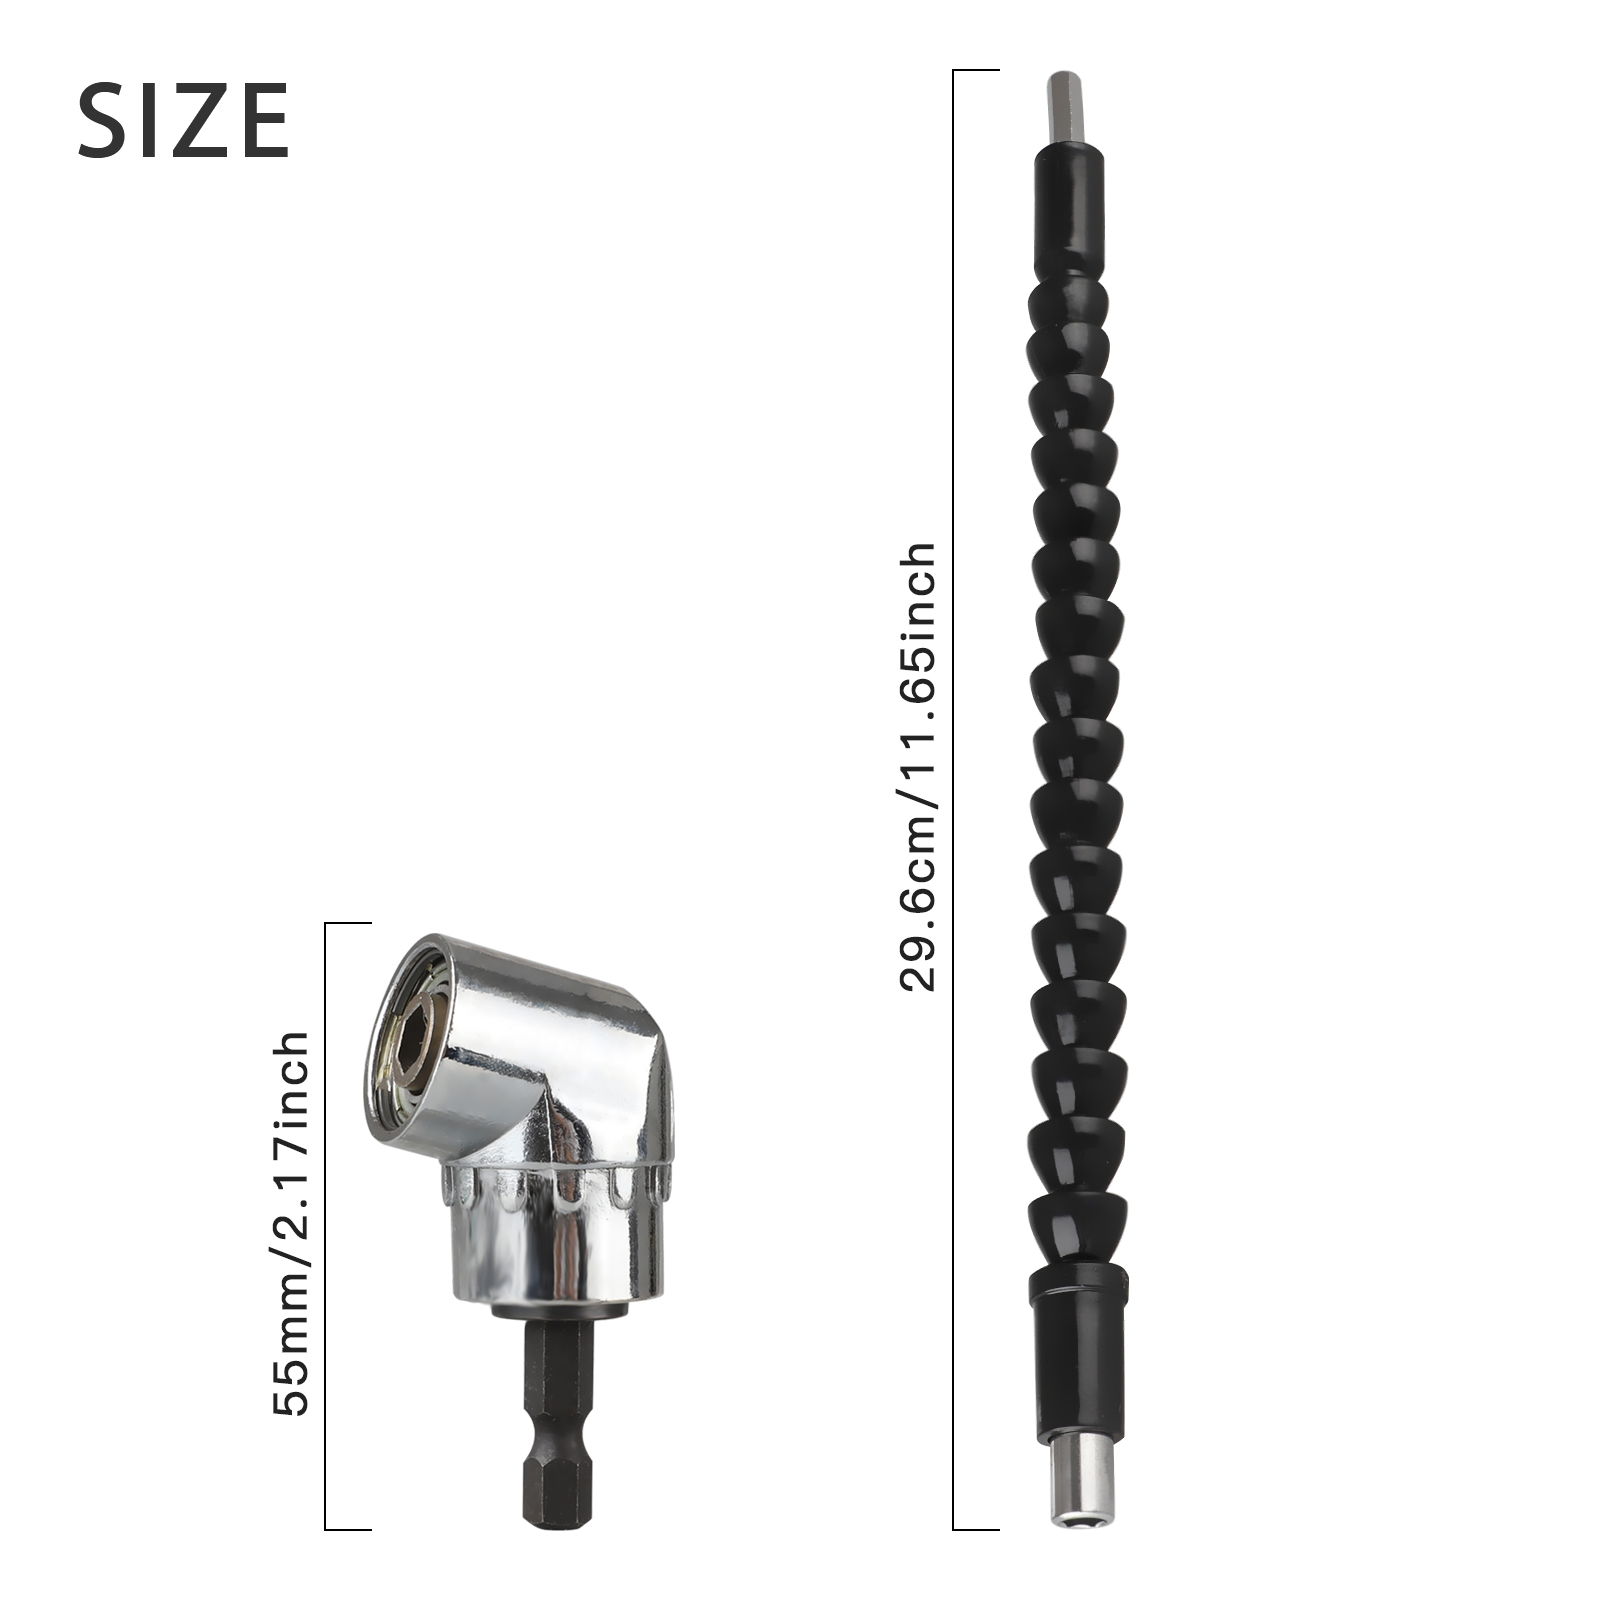 105 Degree Right Angle Extension Power Screwdriver Drill Attachment,90/° Drill Bit Adapter,Square Hole Drill Bit with 1//4 inch Drive 6mm Hex Quick Change Magnetic Drill Bit Angled Bit Power Drill Tool